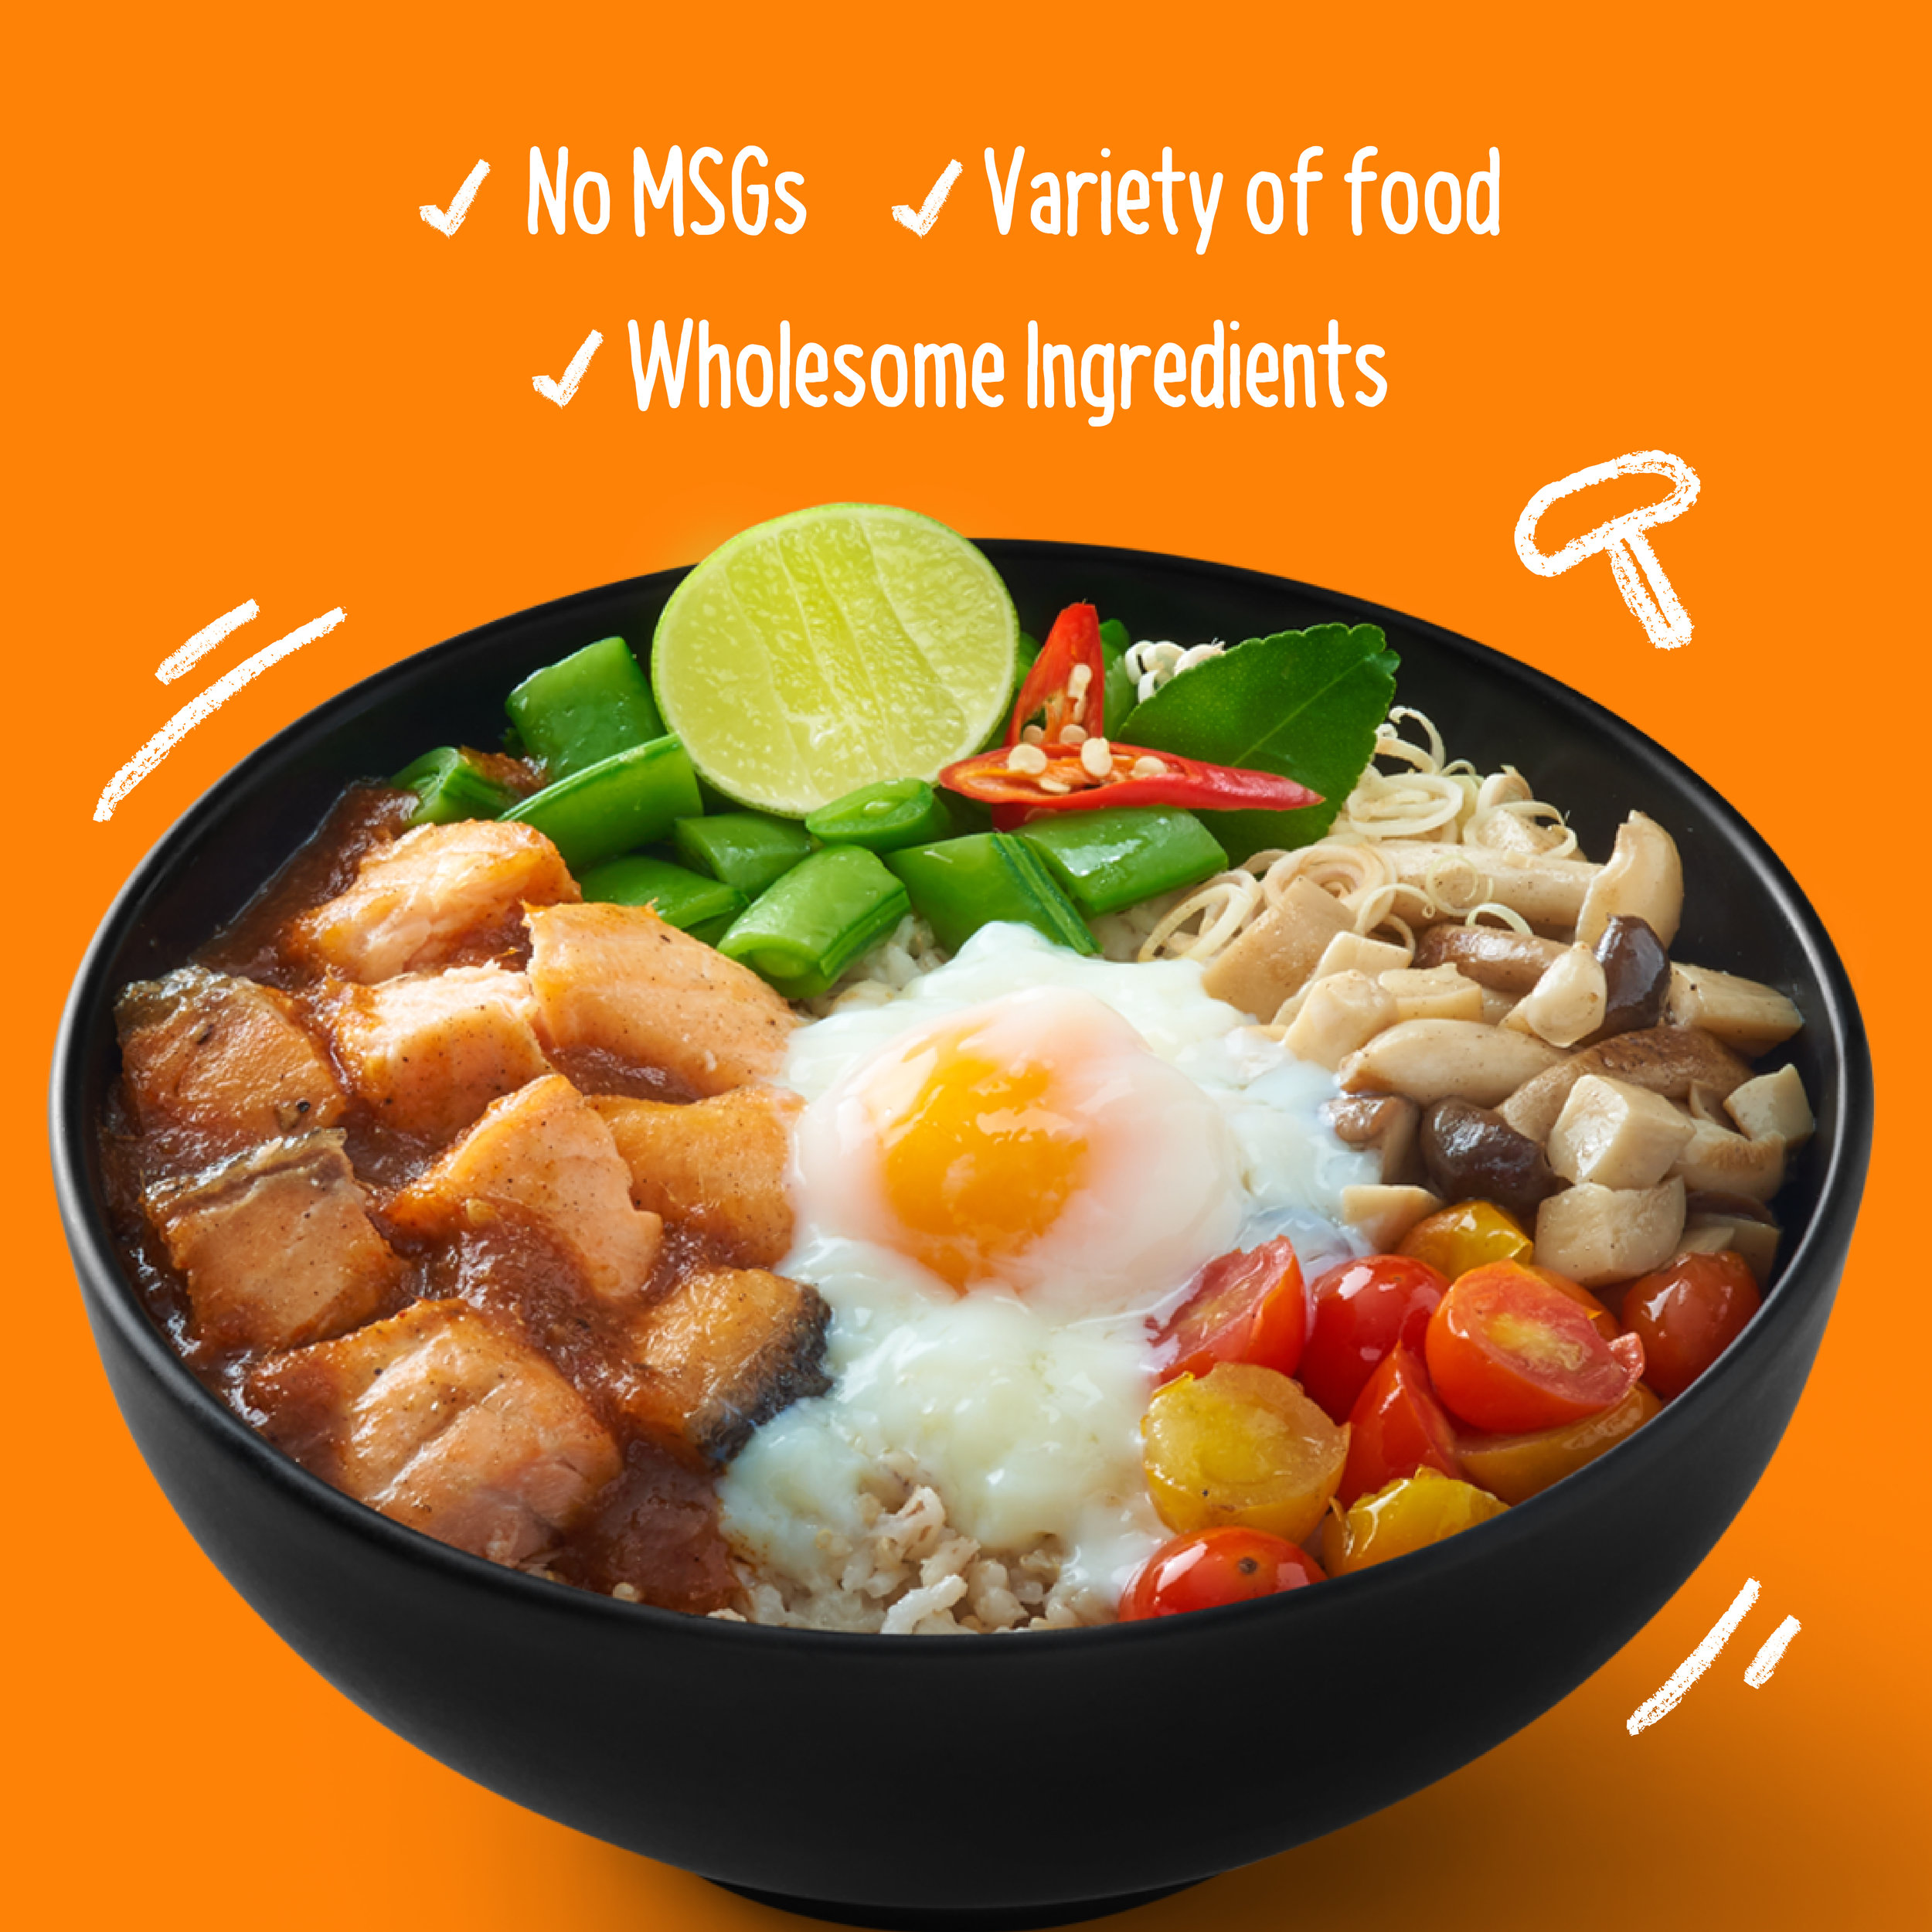 Thai dishes with healthy twists - Full flavor of thai cuisine with lots of nutritious and wholesome ingredients